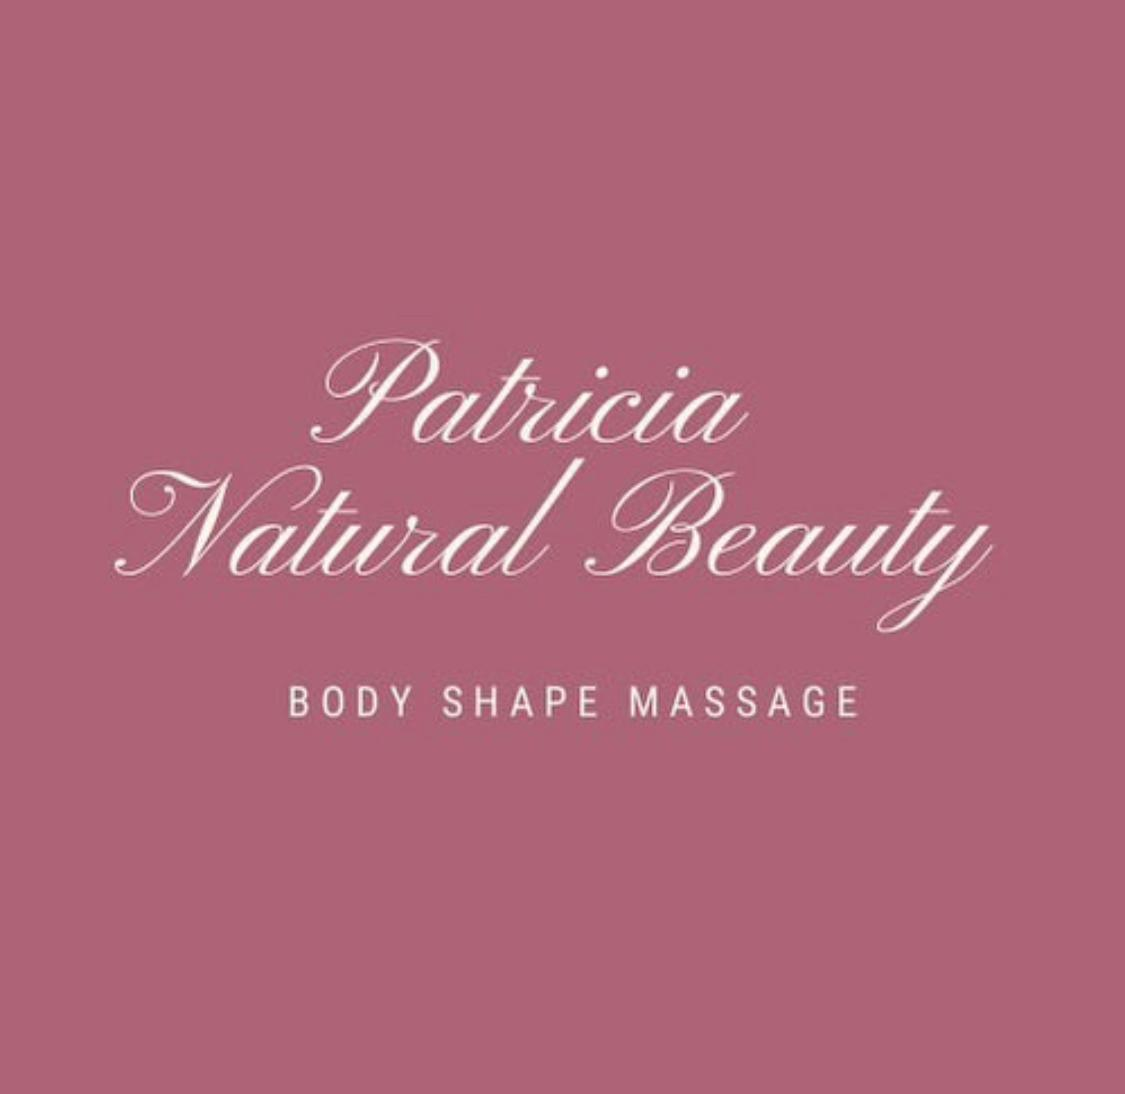 Patricia Natural Beauty